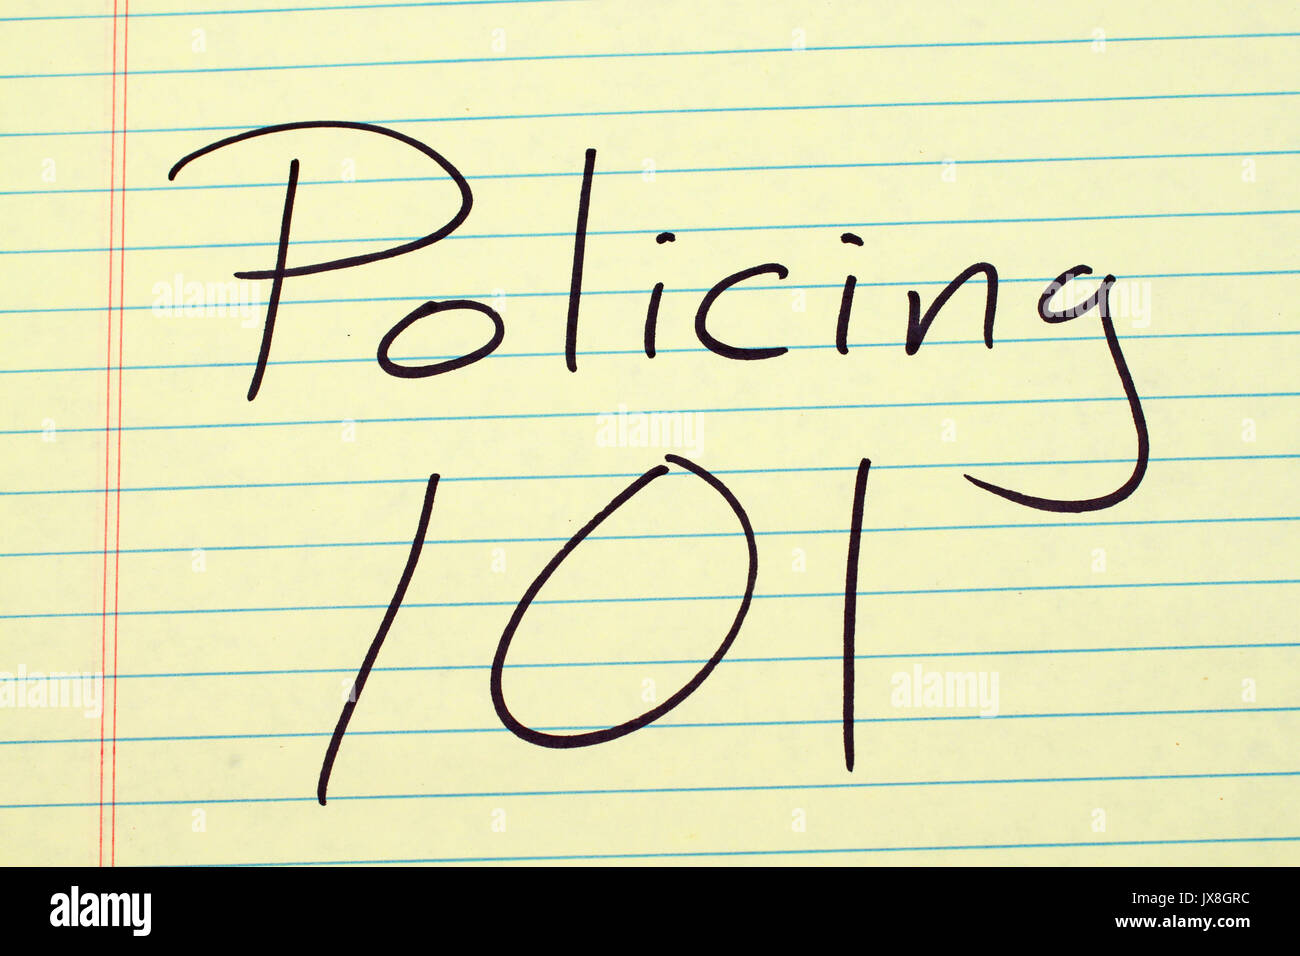 The words 'Policing 101' on a yellow legal pad - Stock Image